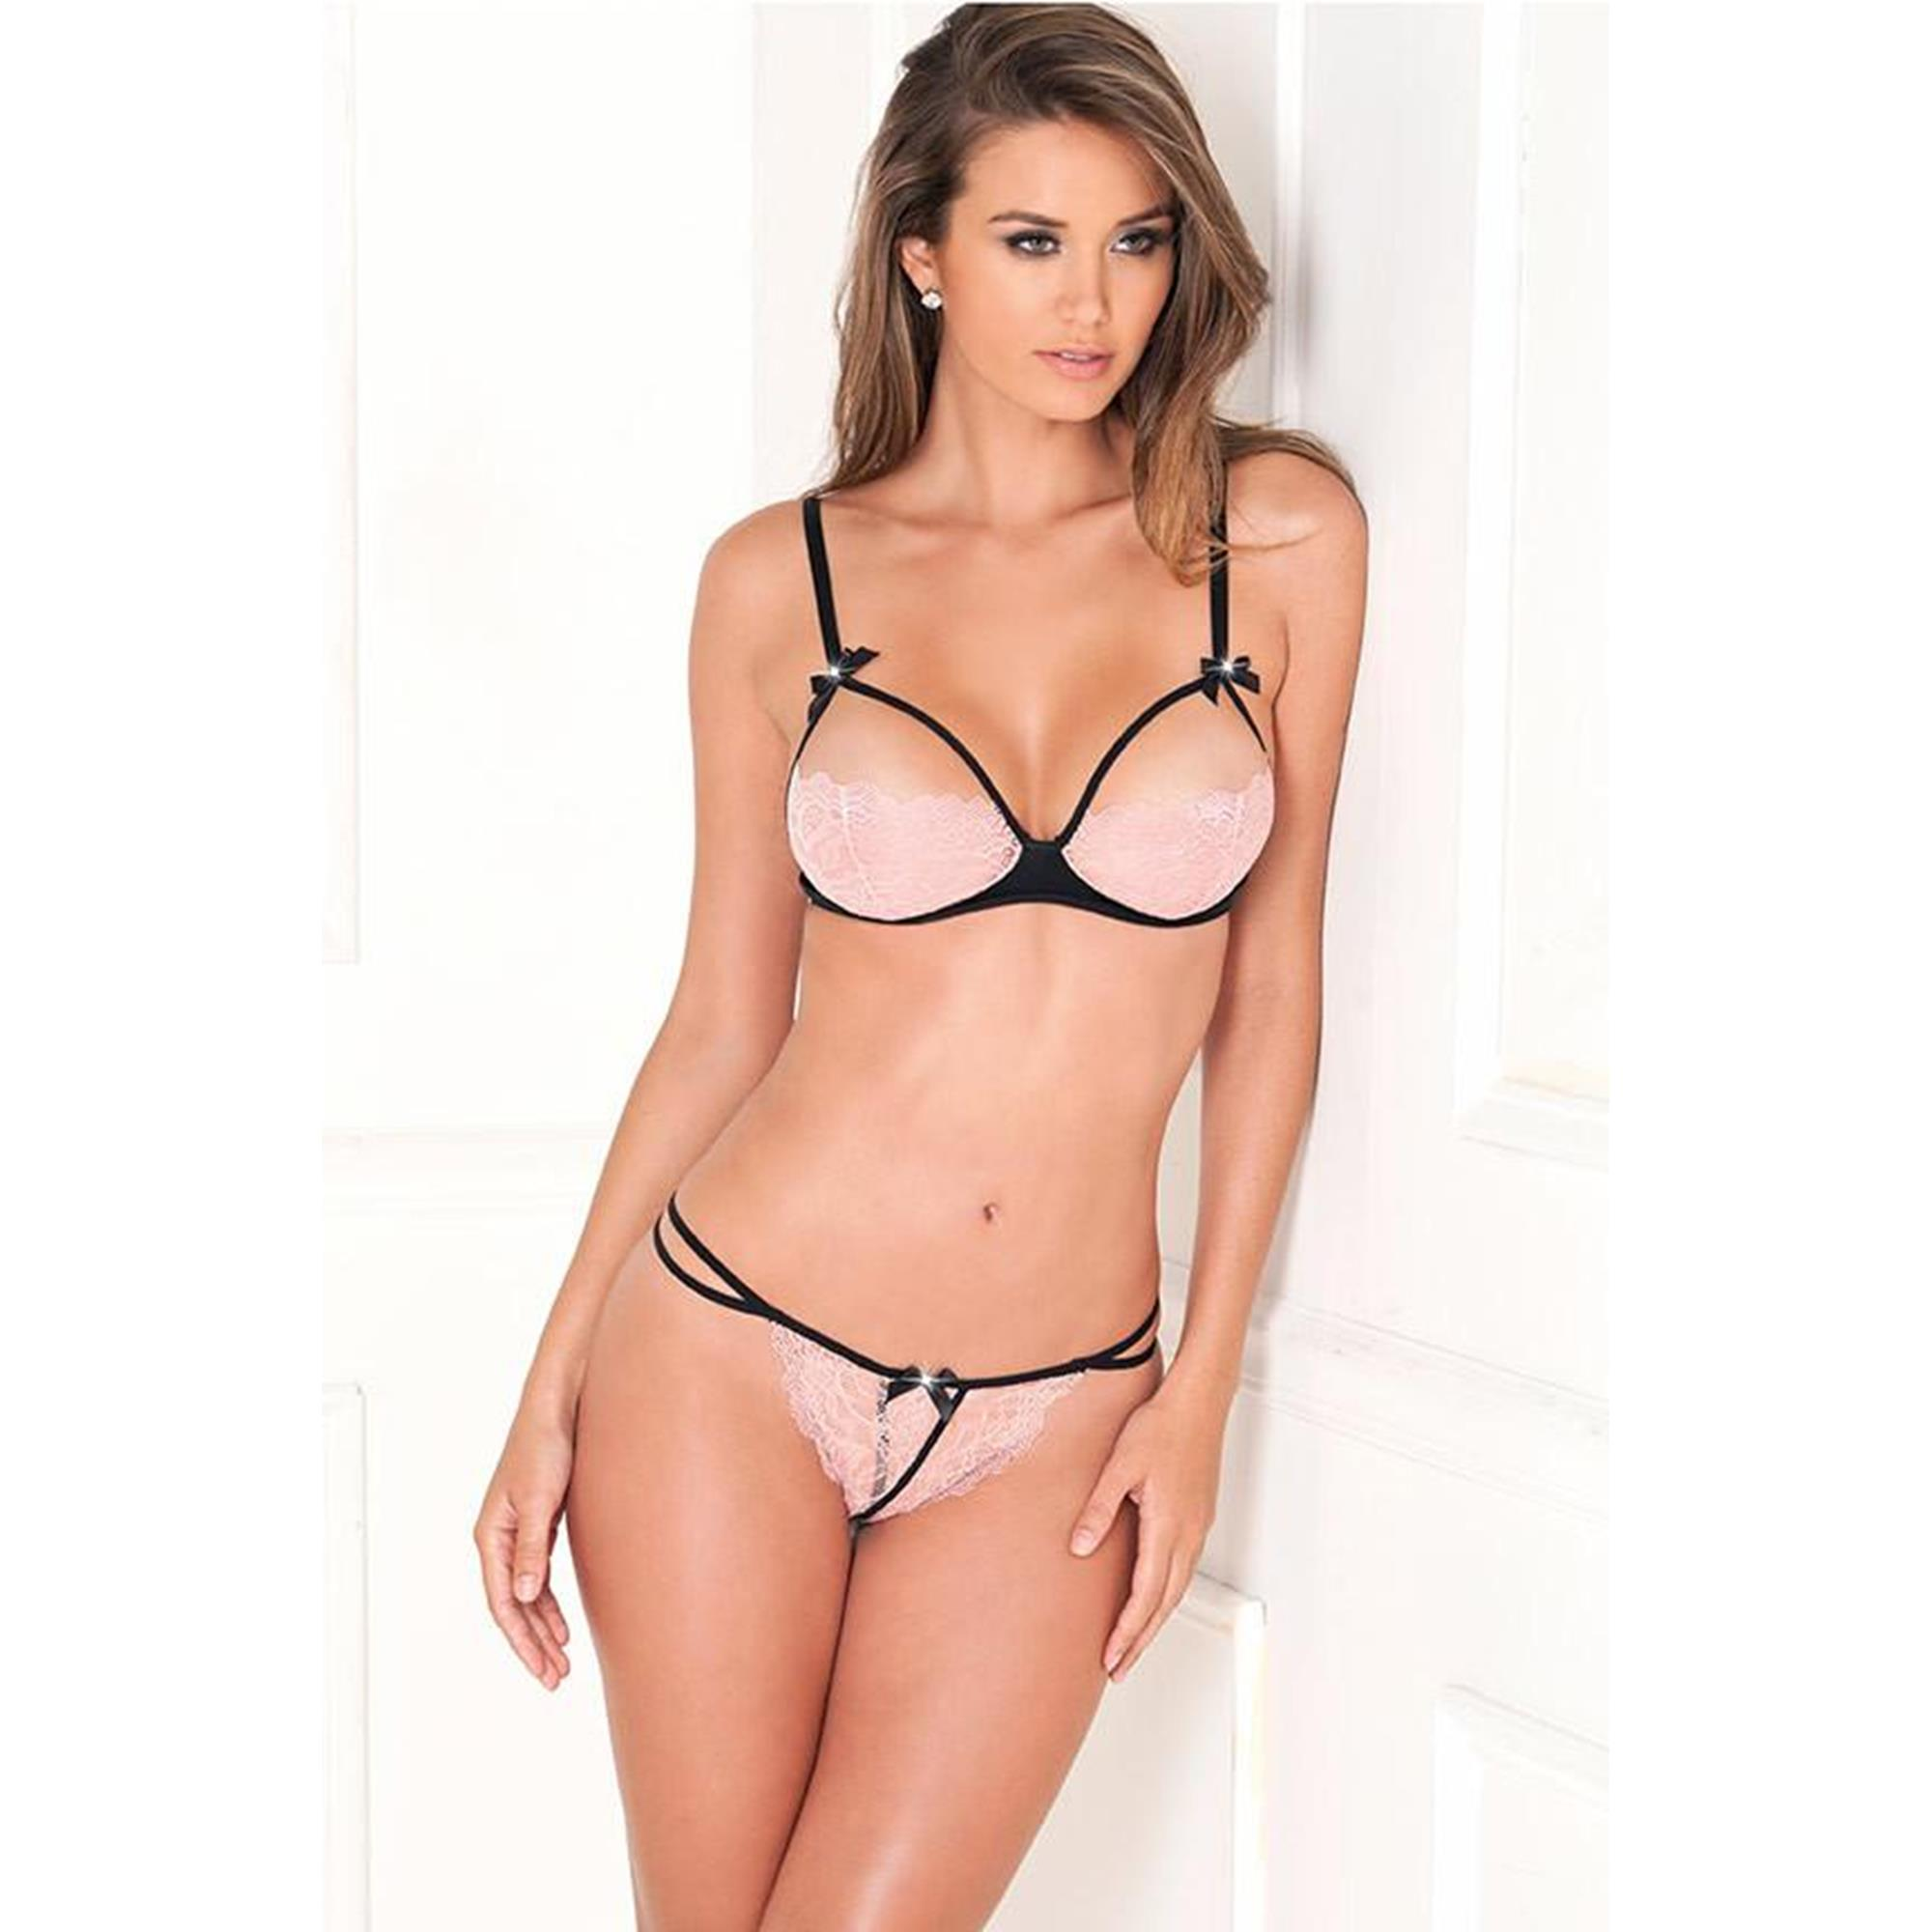 Image of 2PC Lace Bra Pink Cups and G-String S/M